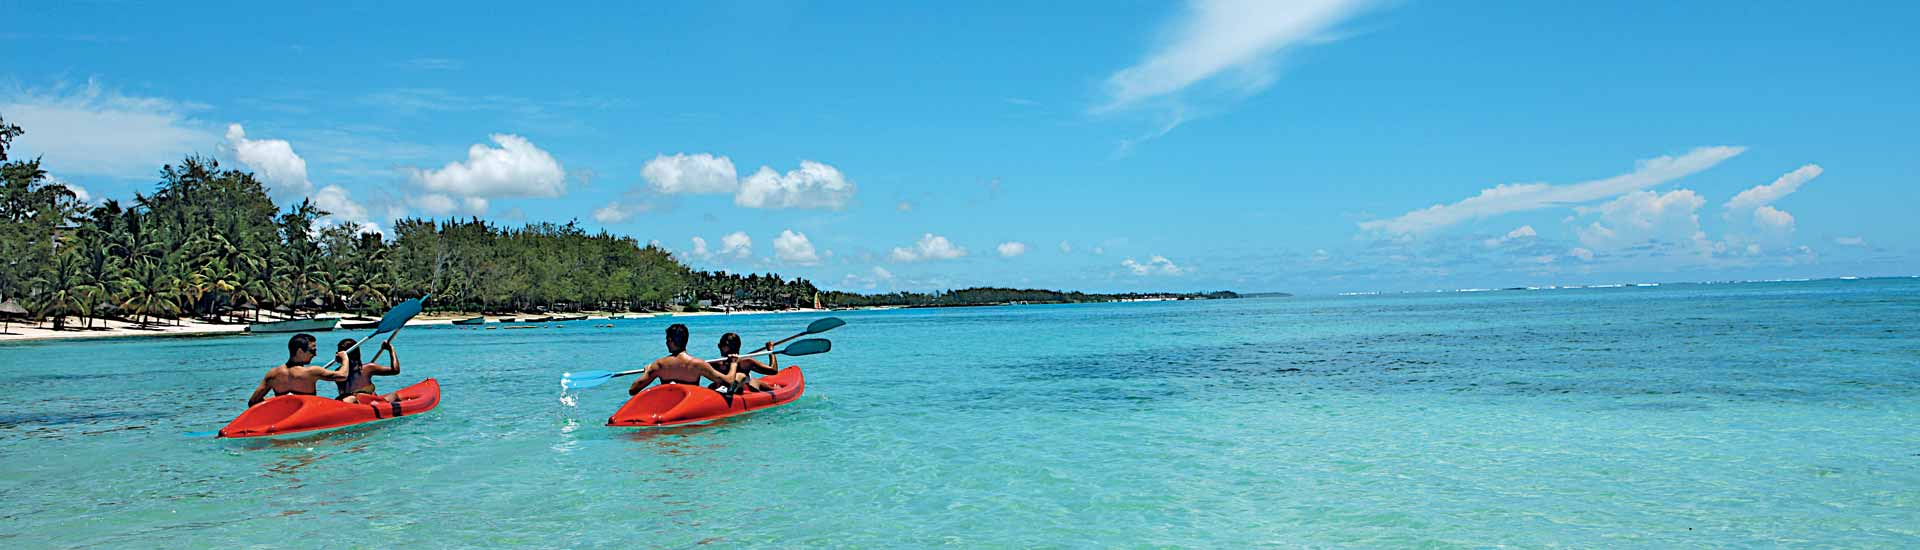 Mauritius Holiday Special - Sea Kayaking